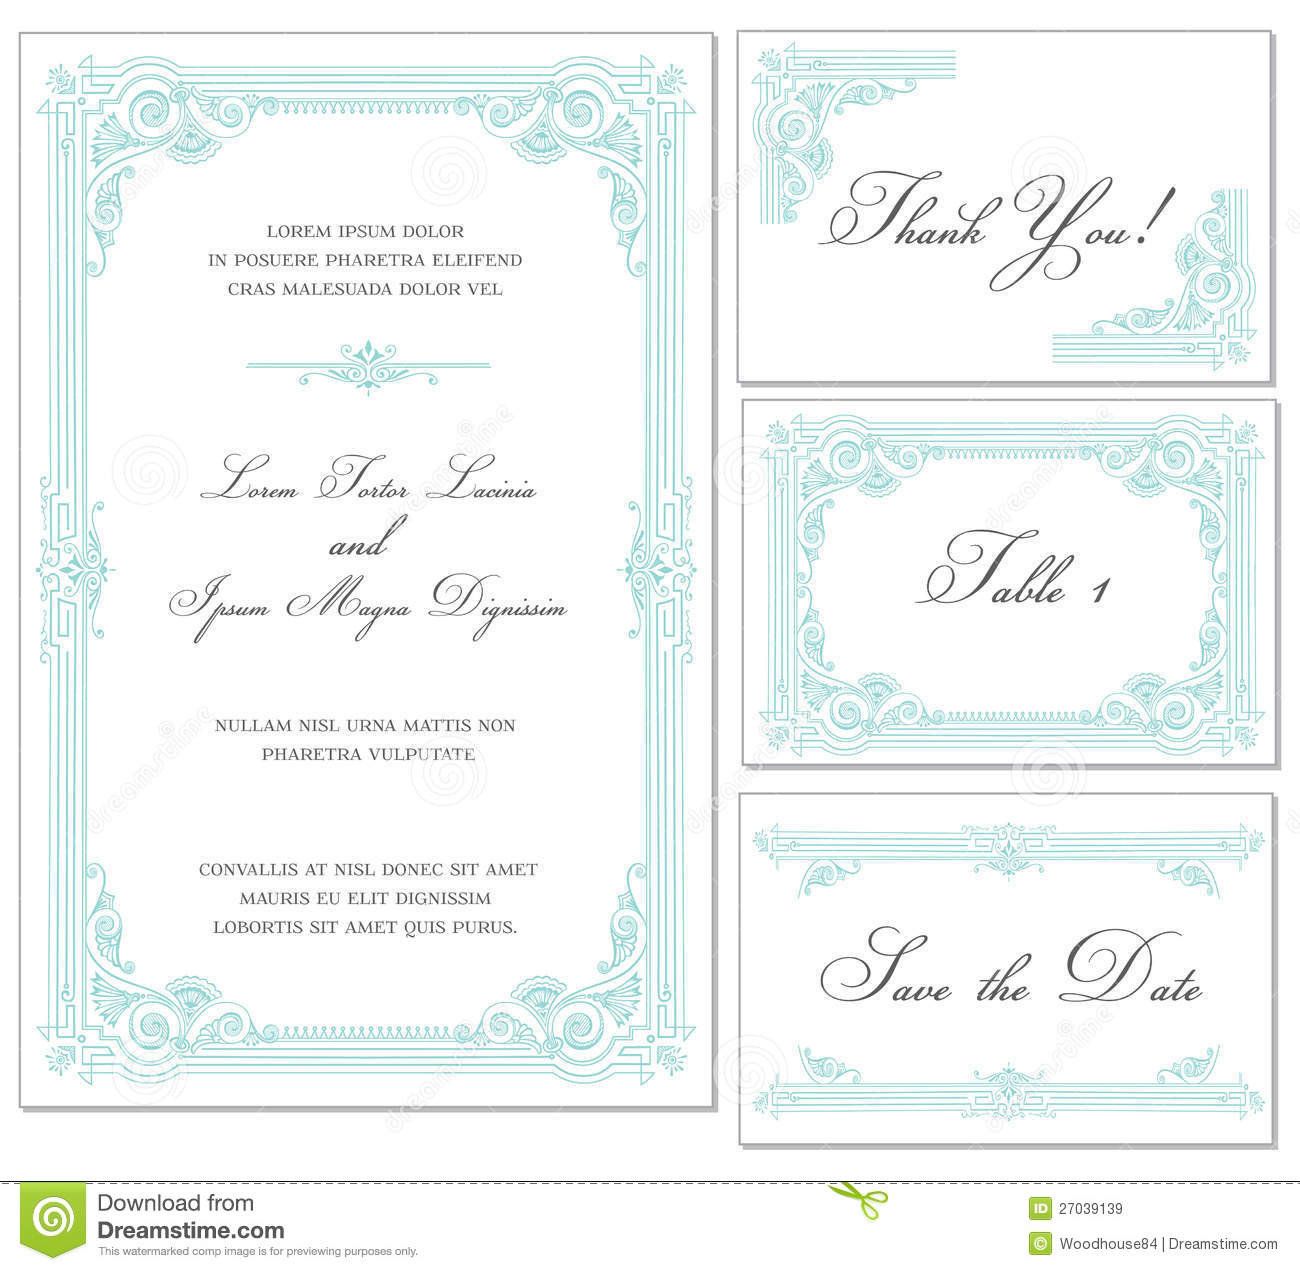 Wedding Invitations Prices is best invitations layout